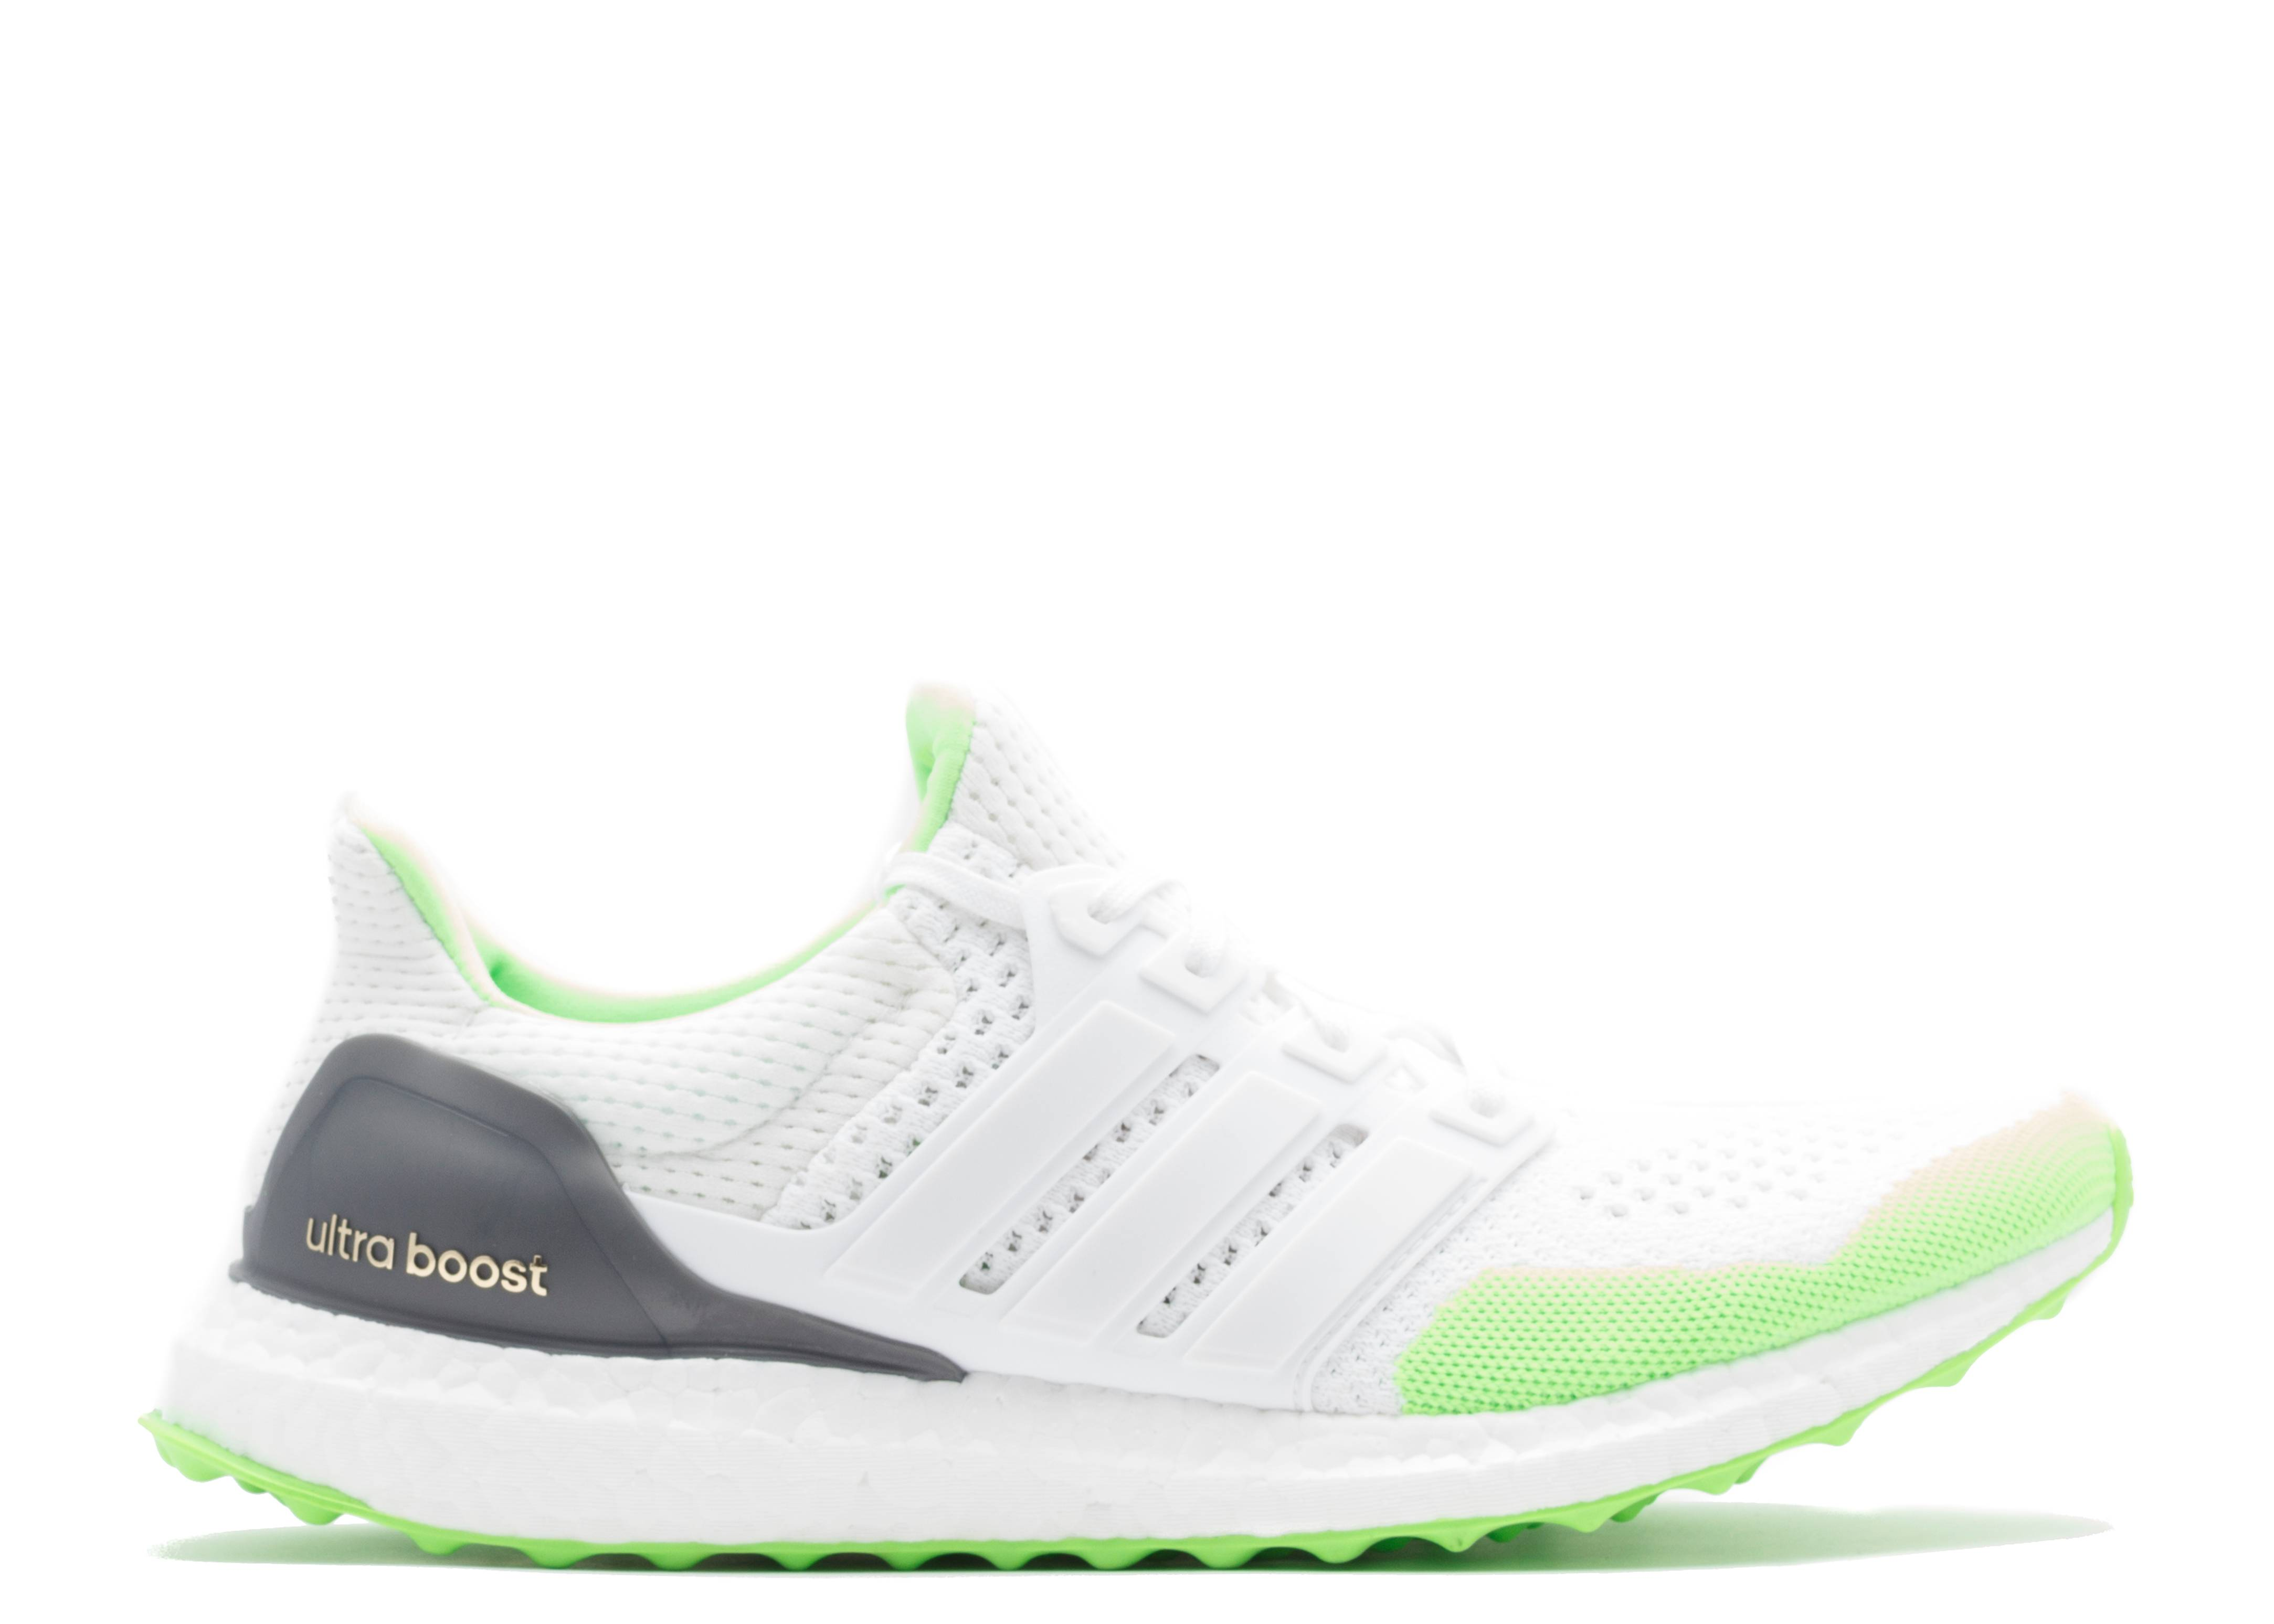 56c3db424 Ultra Boost Kolor - Adidas - s77419 - solar green white